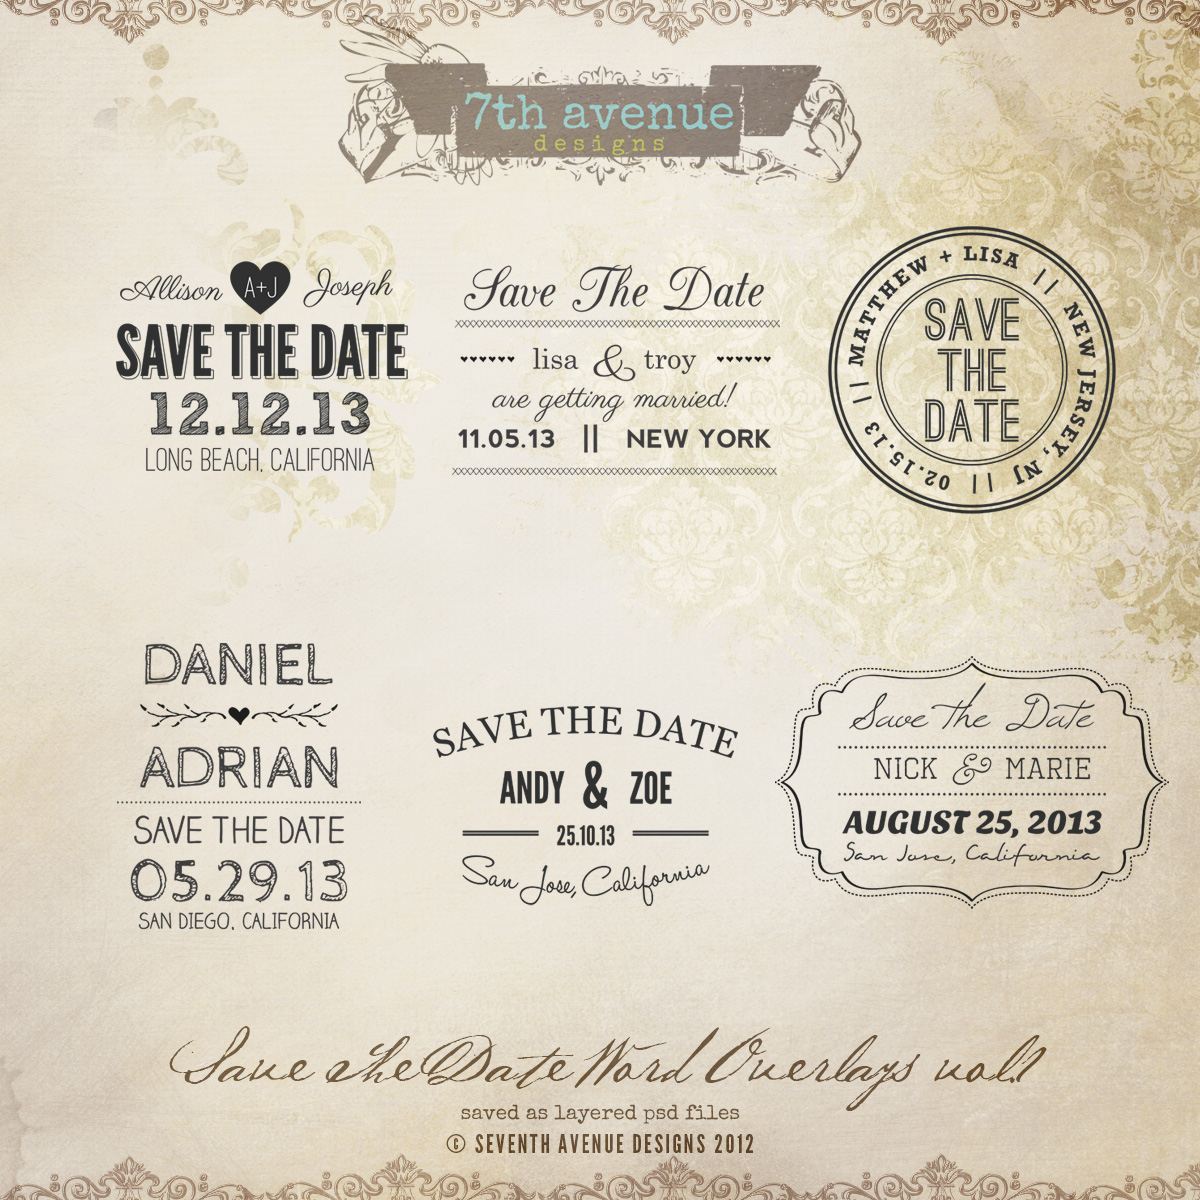 Save the date word overlays vol1 overlays savethedate1 1000 7thavenue designs logo for Save the date postcard template free